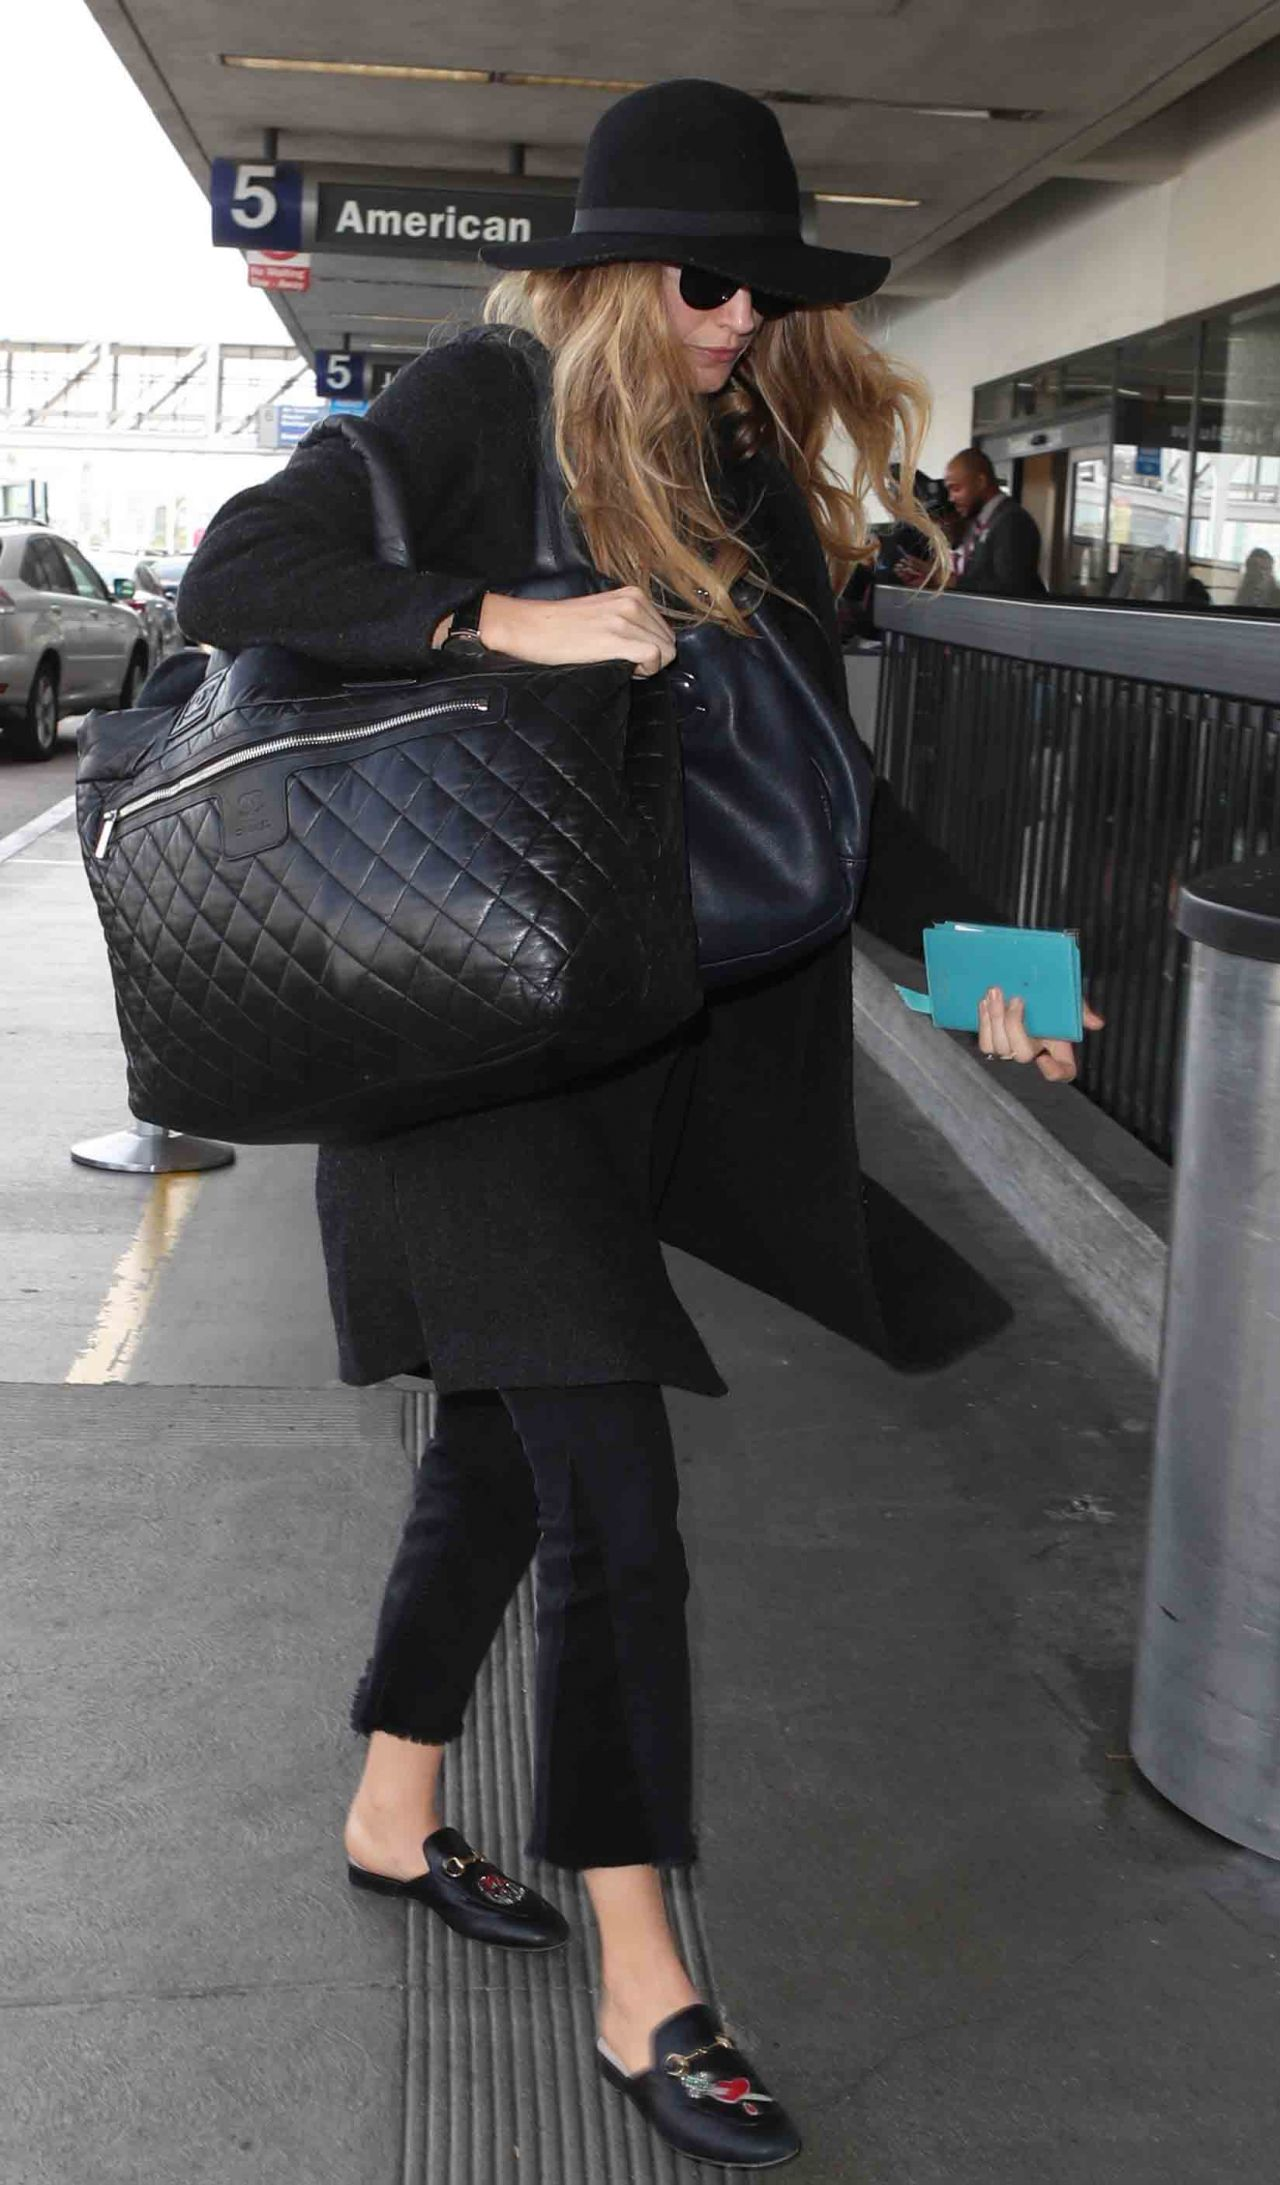 Blake Lively in Comfy Travel Outfit at LAX Airport in LA 10/11/2017